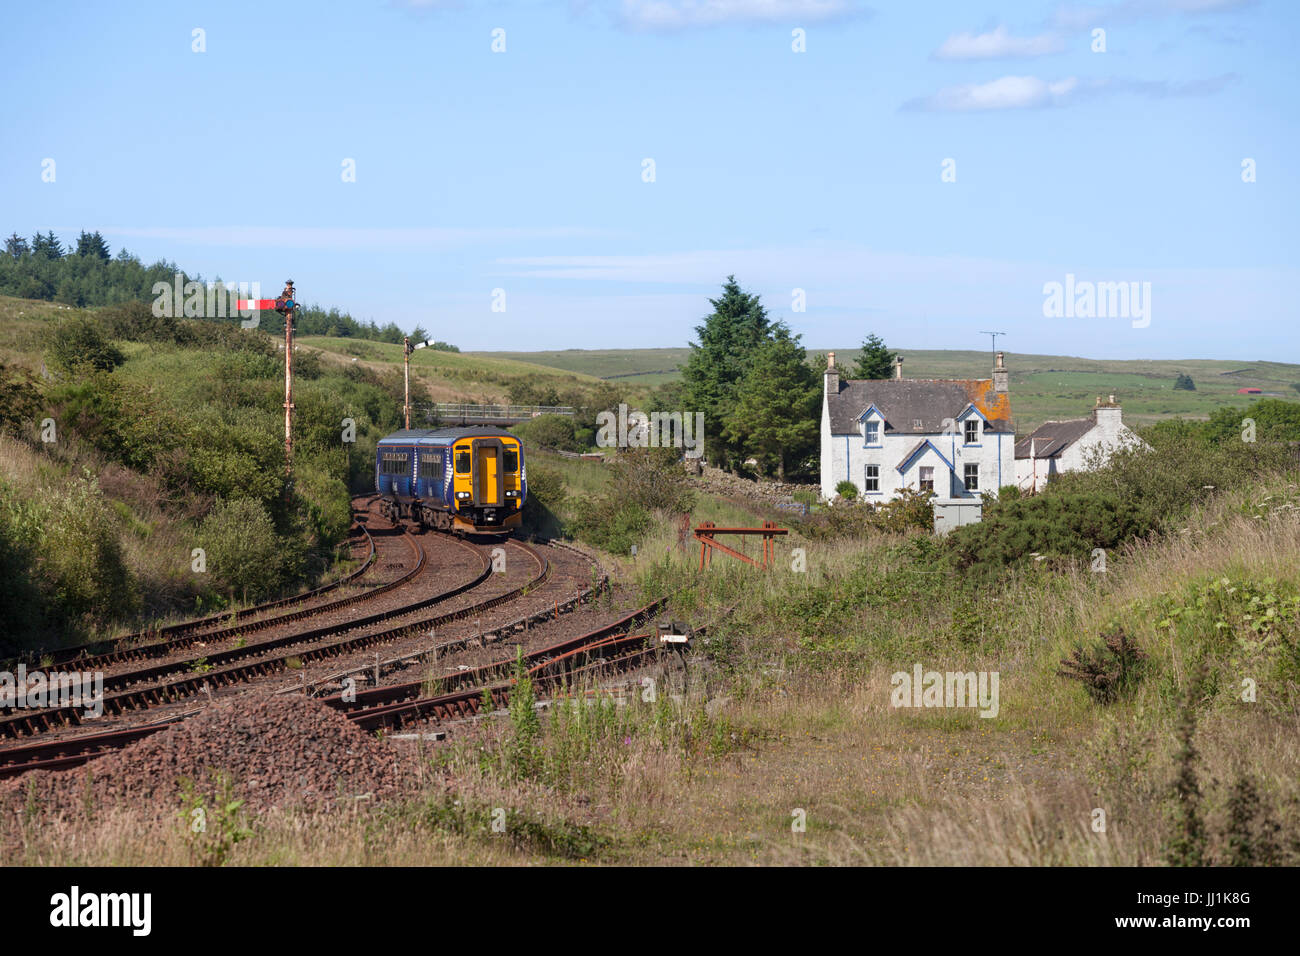 Scotrail class 156 sprinter train at the isolated passing loop at Glenwhilley on the rural railway line to Stranraer - Stock Image